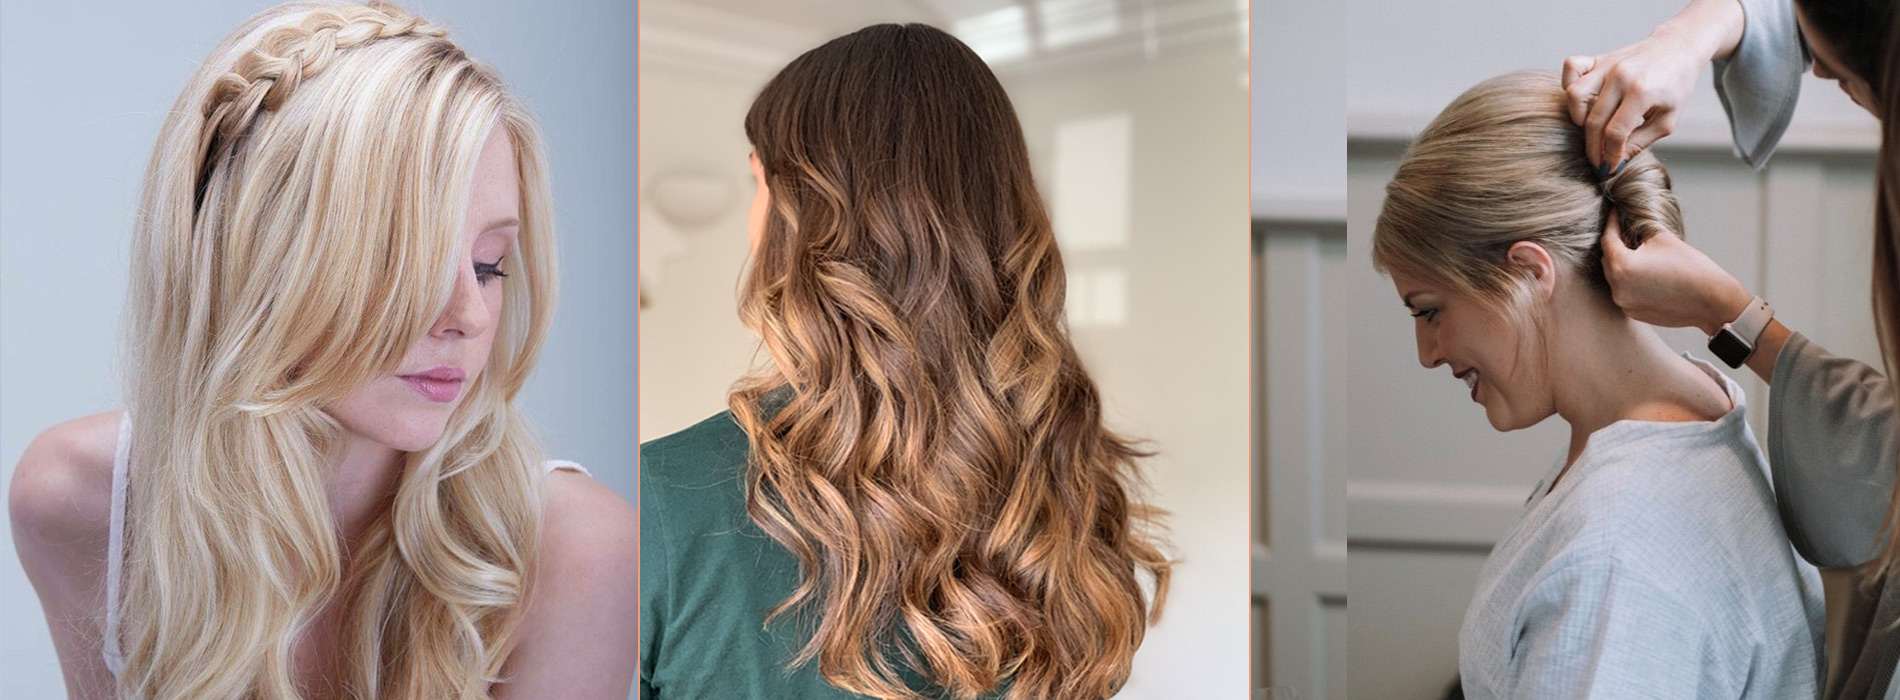 Colour Expert - Hairstylist